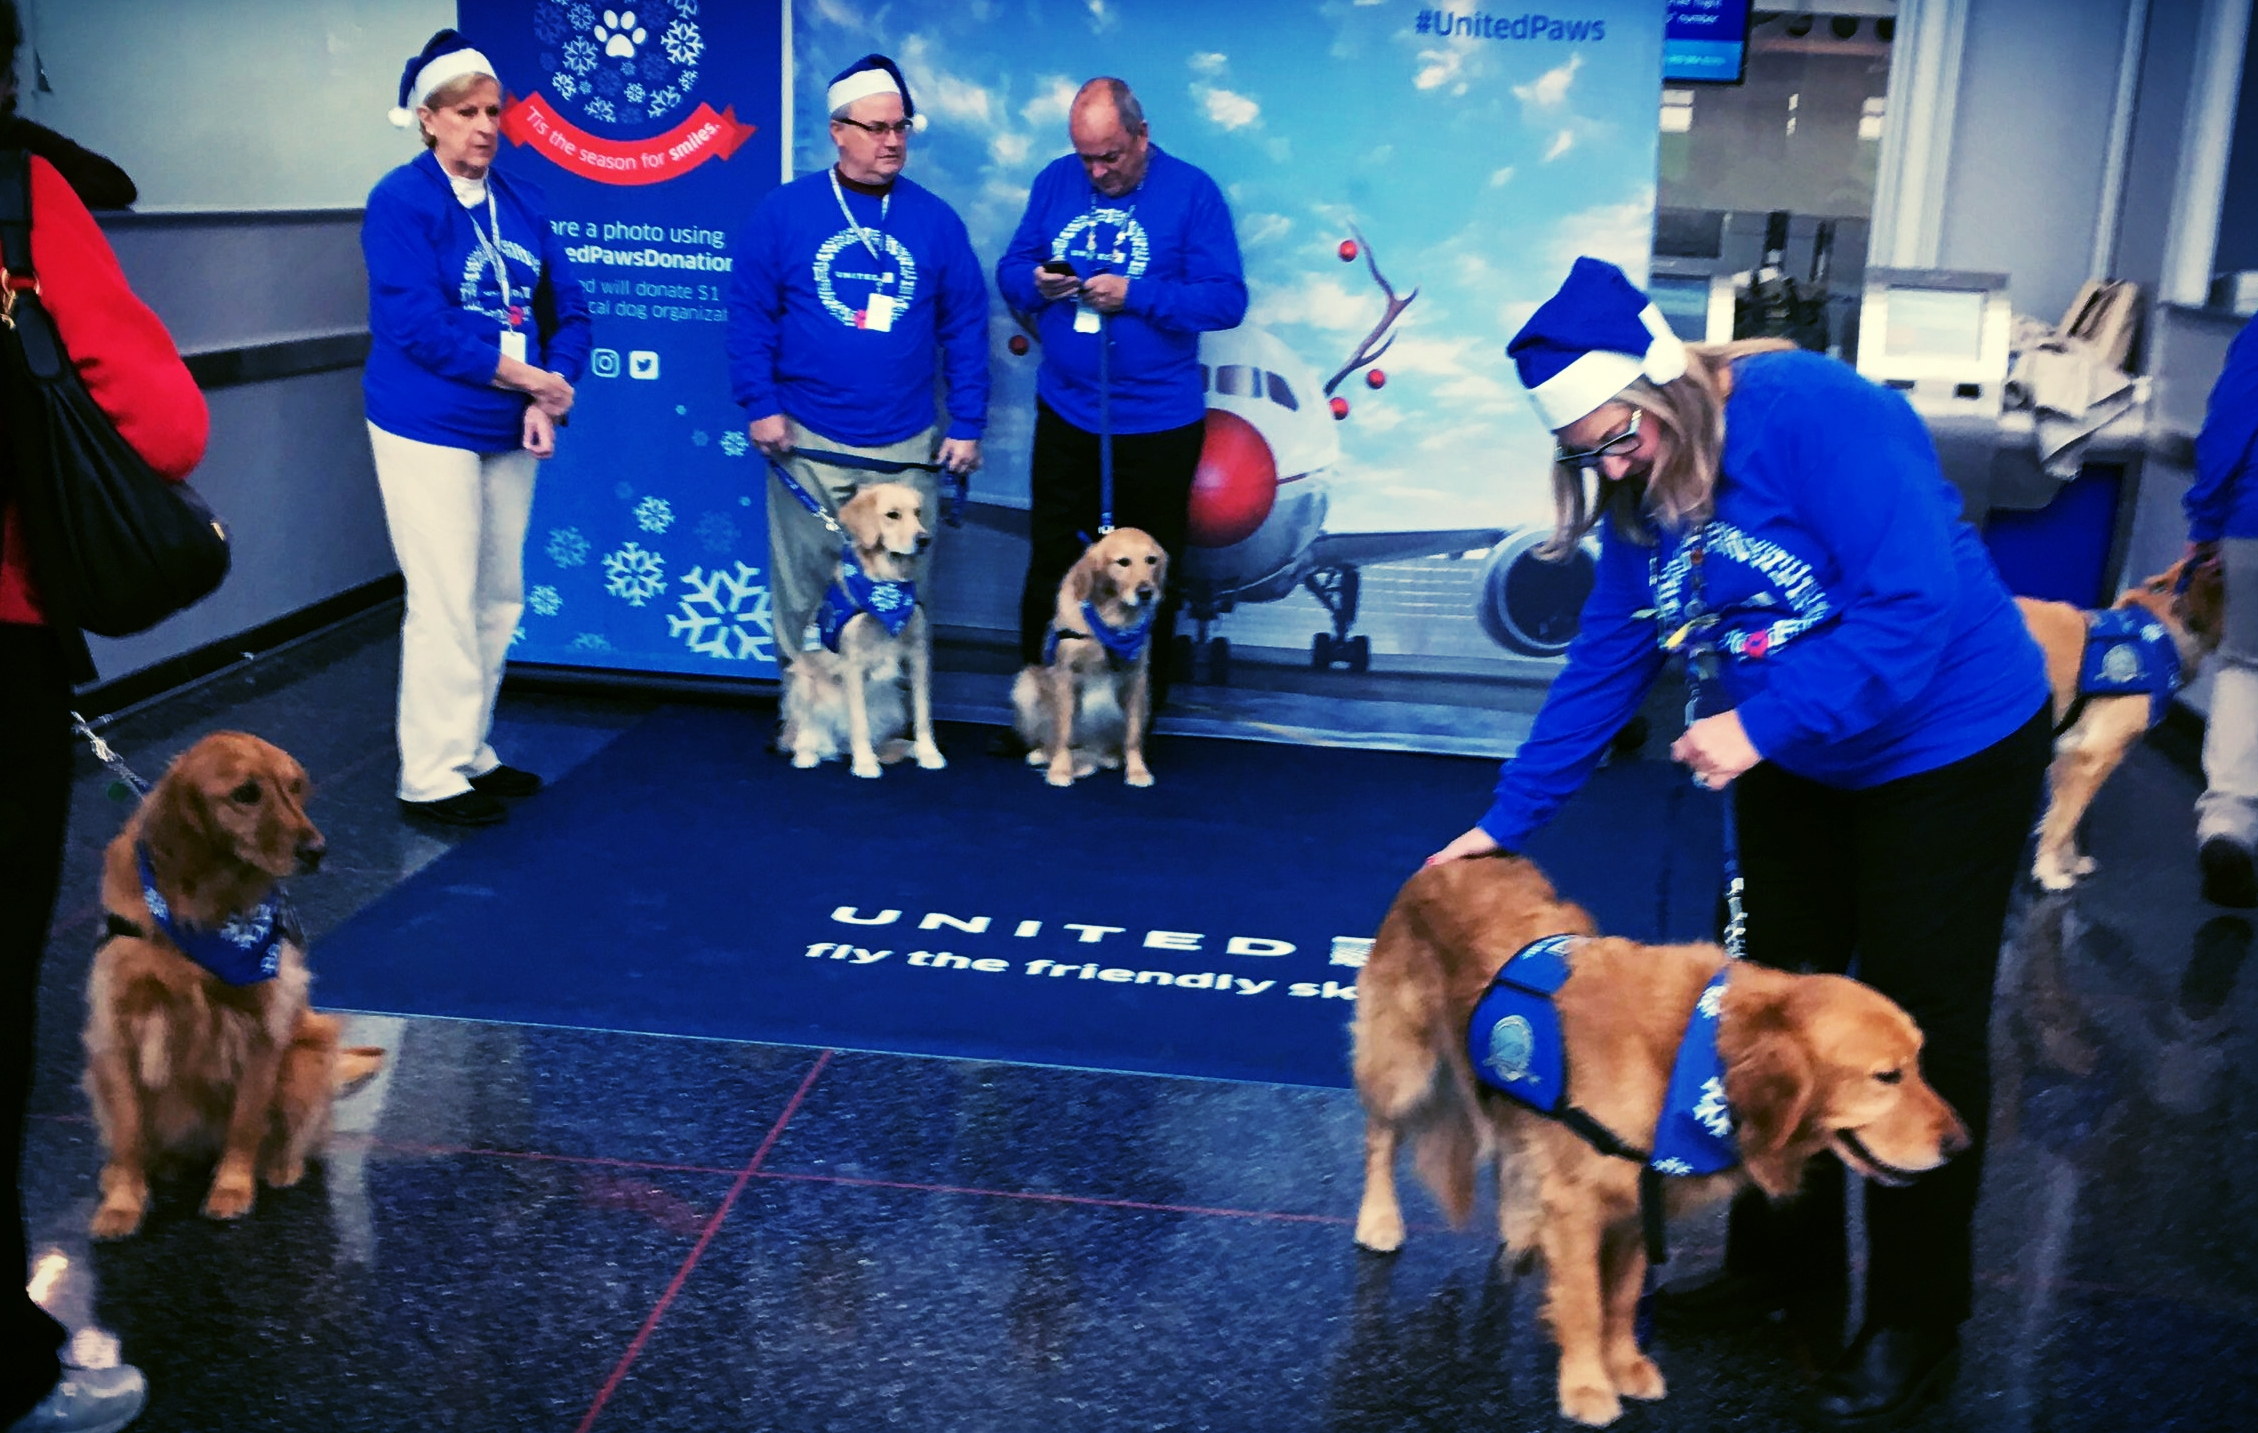 I'm  definitely  grateful for the care puppies I saw today in the Chicago airport on my way back to Atlanta.